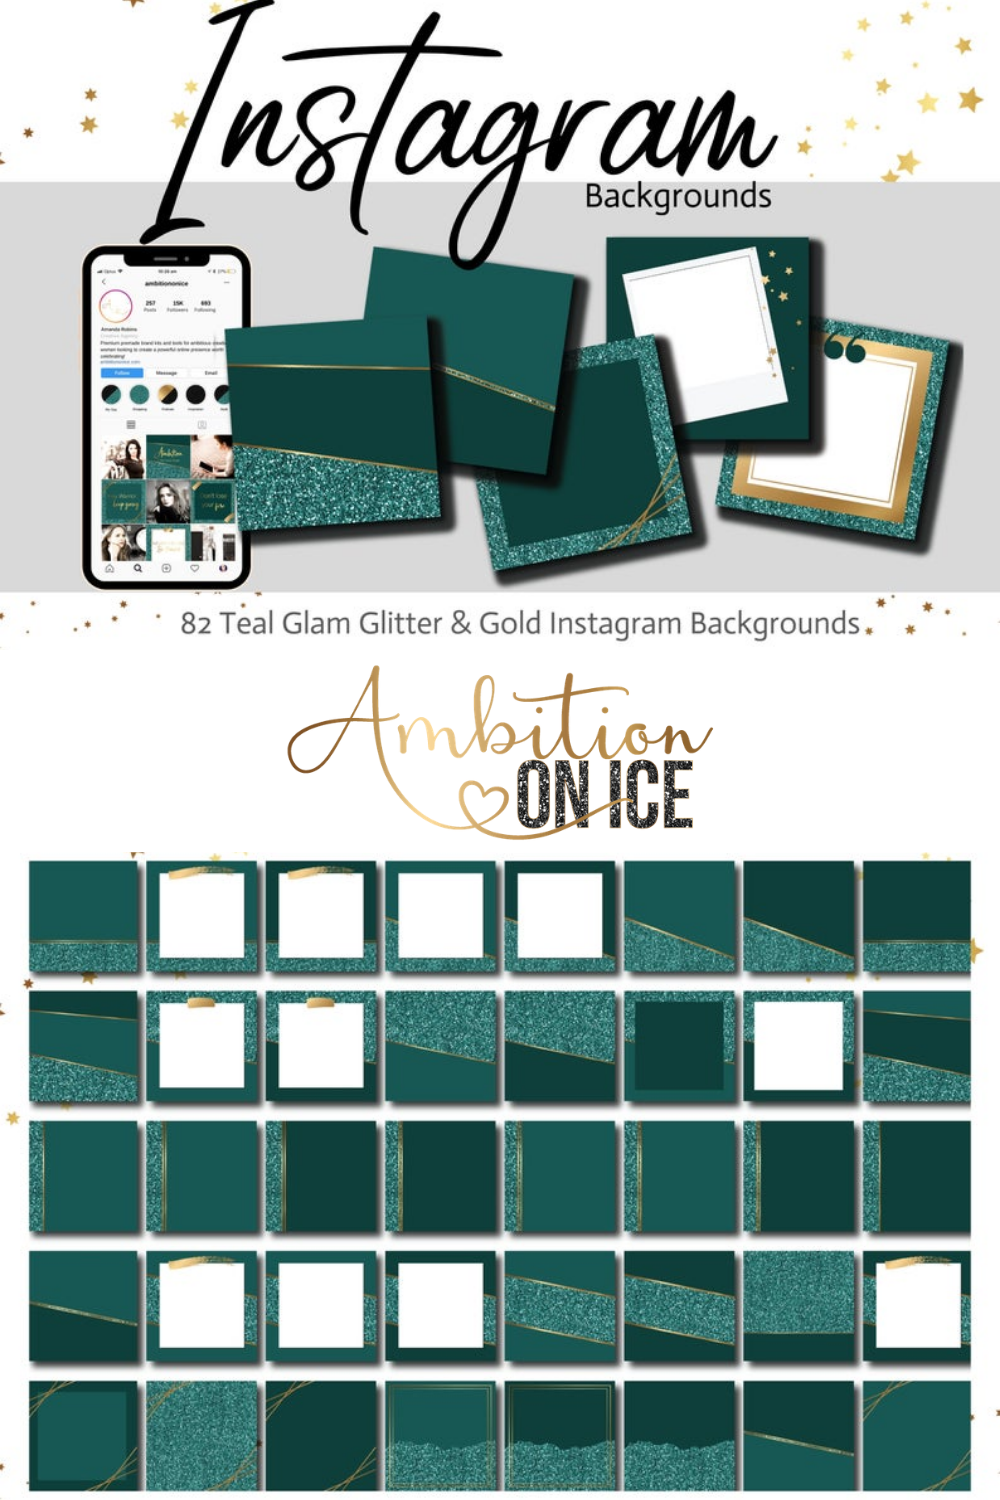 82 Teal Glam Glitter & Gold Instagram Feed Backgrounds